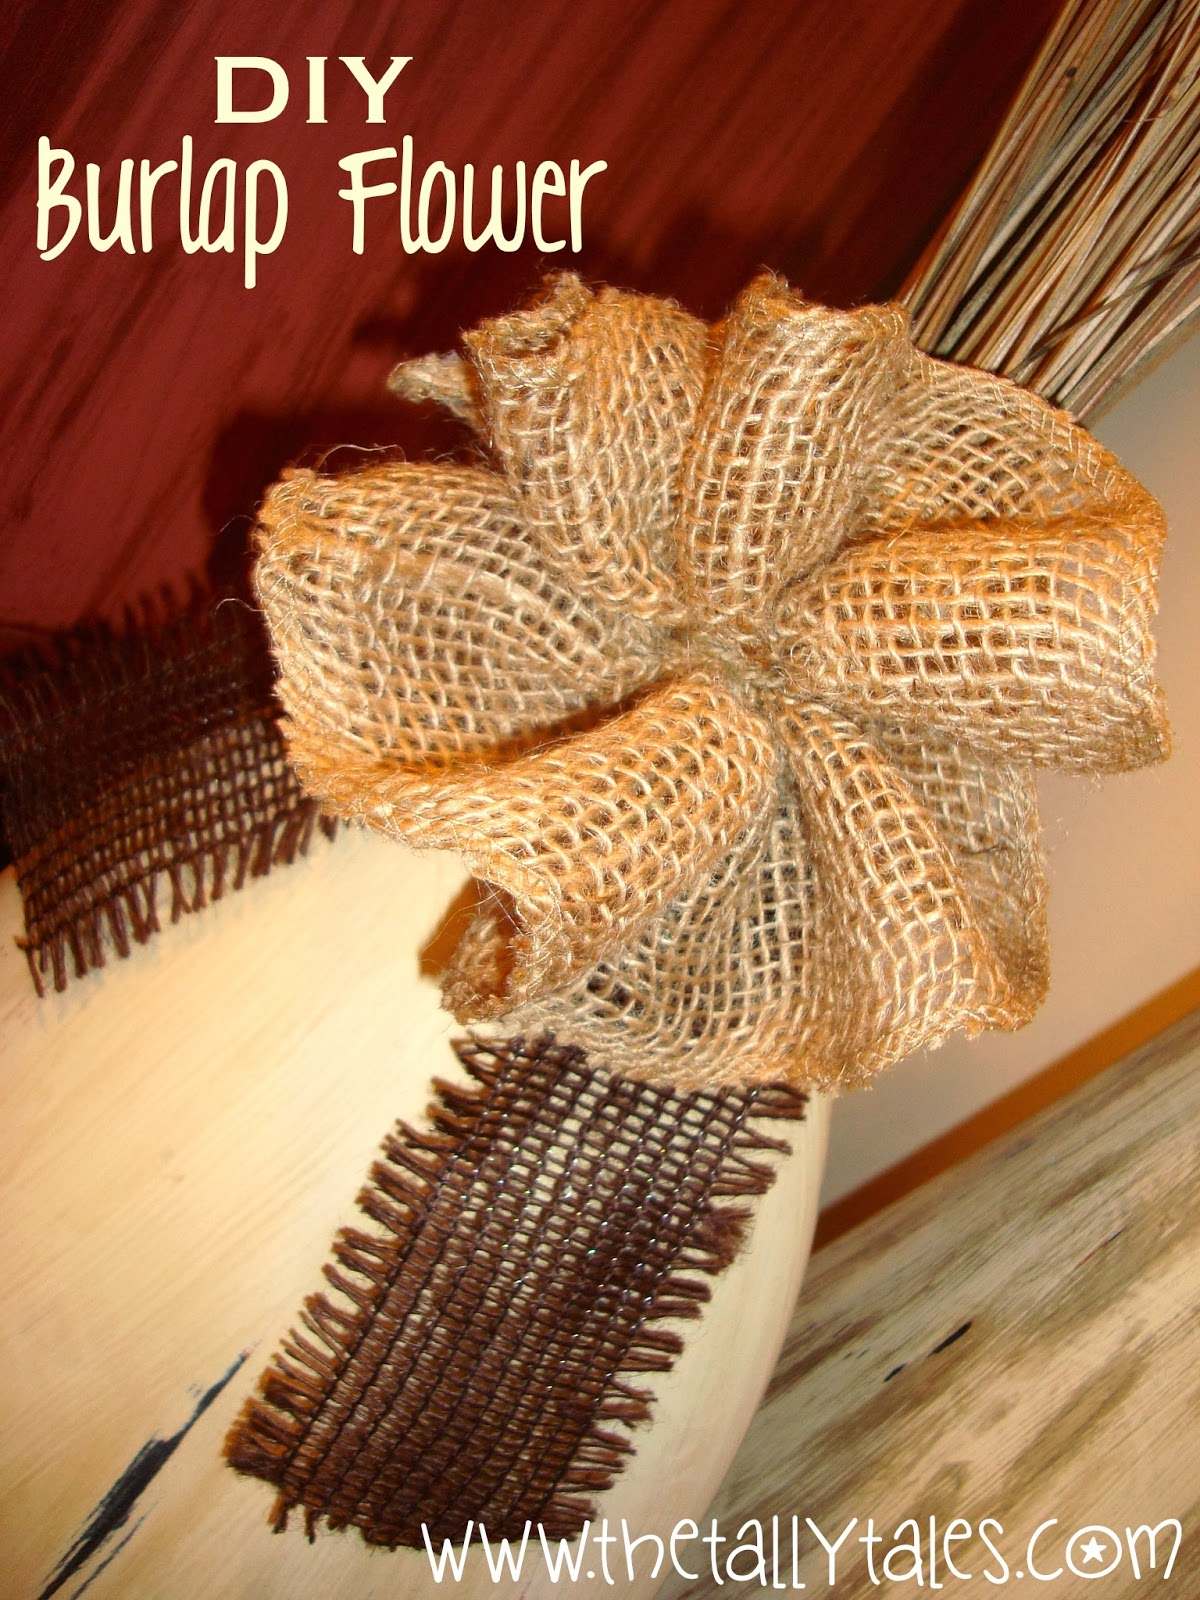 The Tally Tales DIY Burlap Bow Tutorial